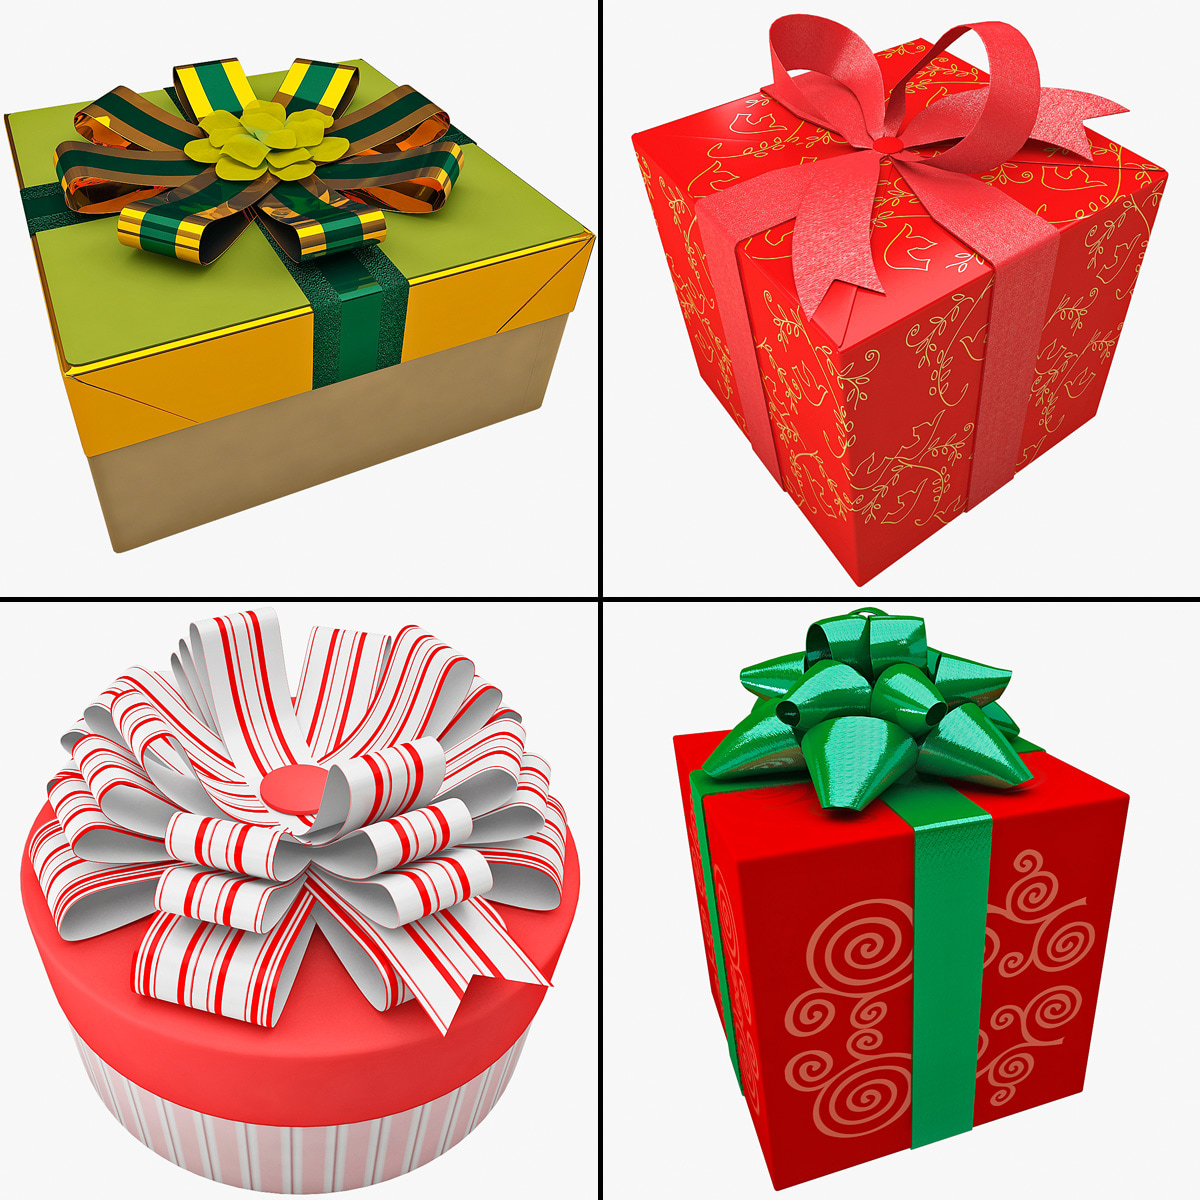 Gift_Boxes_Collection_v1_000.jpg